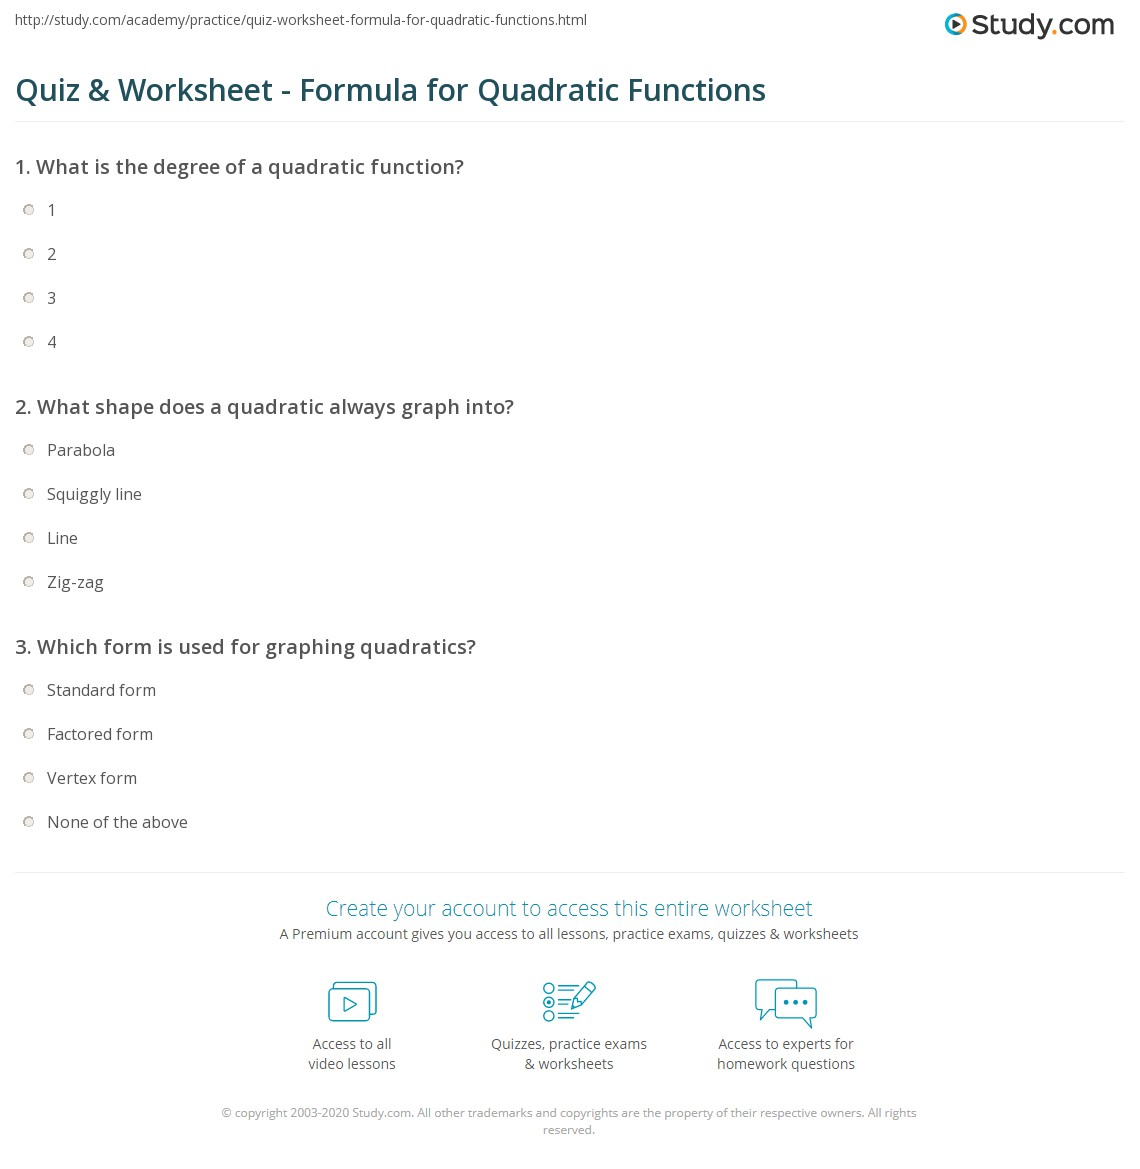 Worksheets Graphing Quadratic Functions In Standard Form Worksheet quadratic function worksheet delibertad quiz formula for functions study com